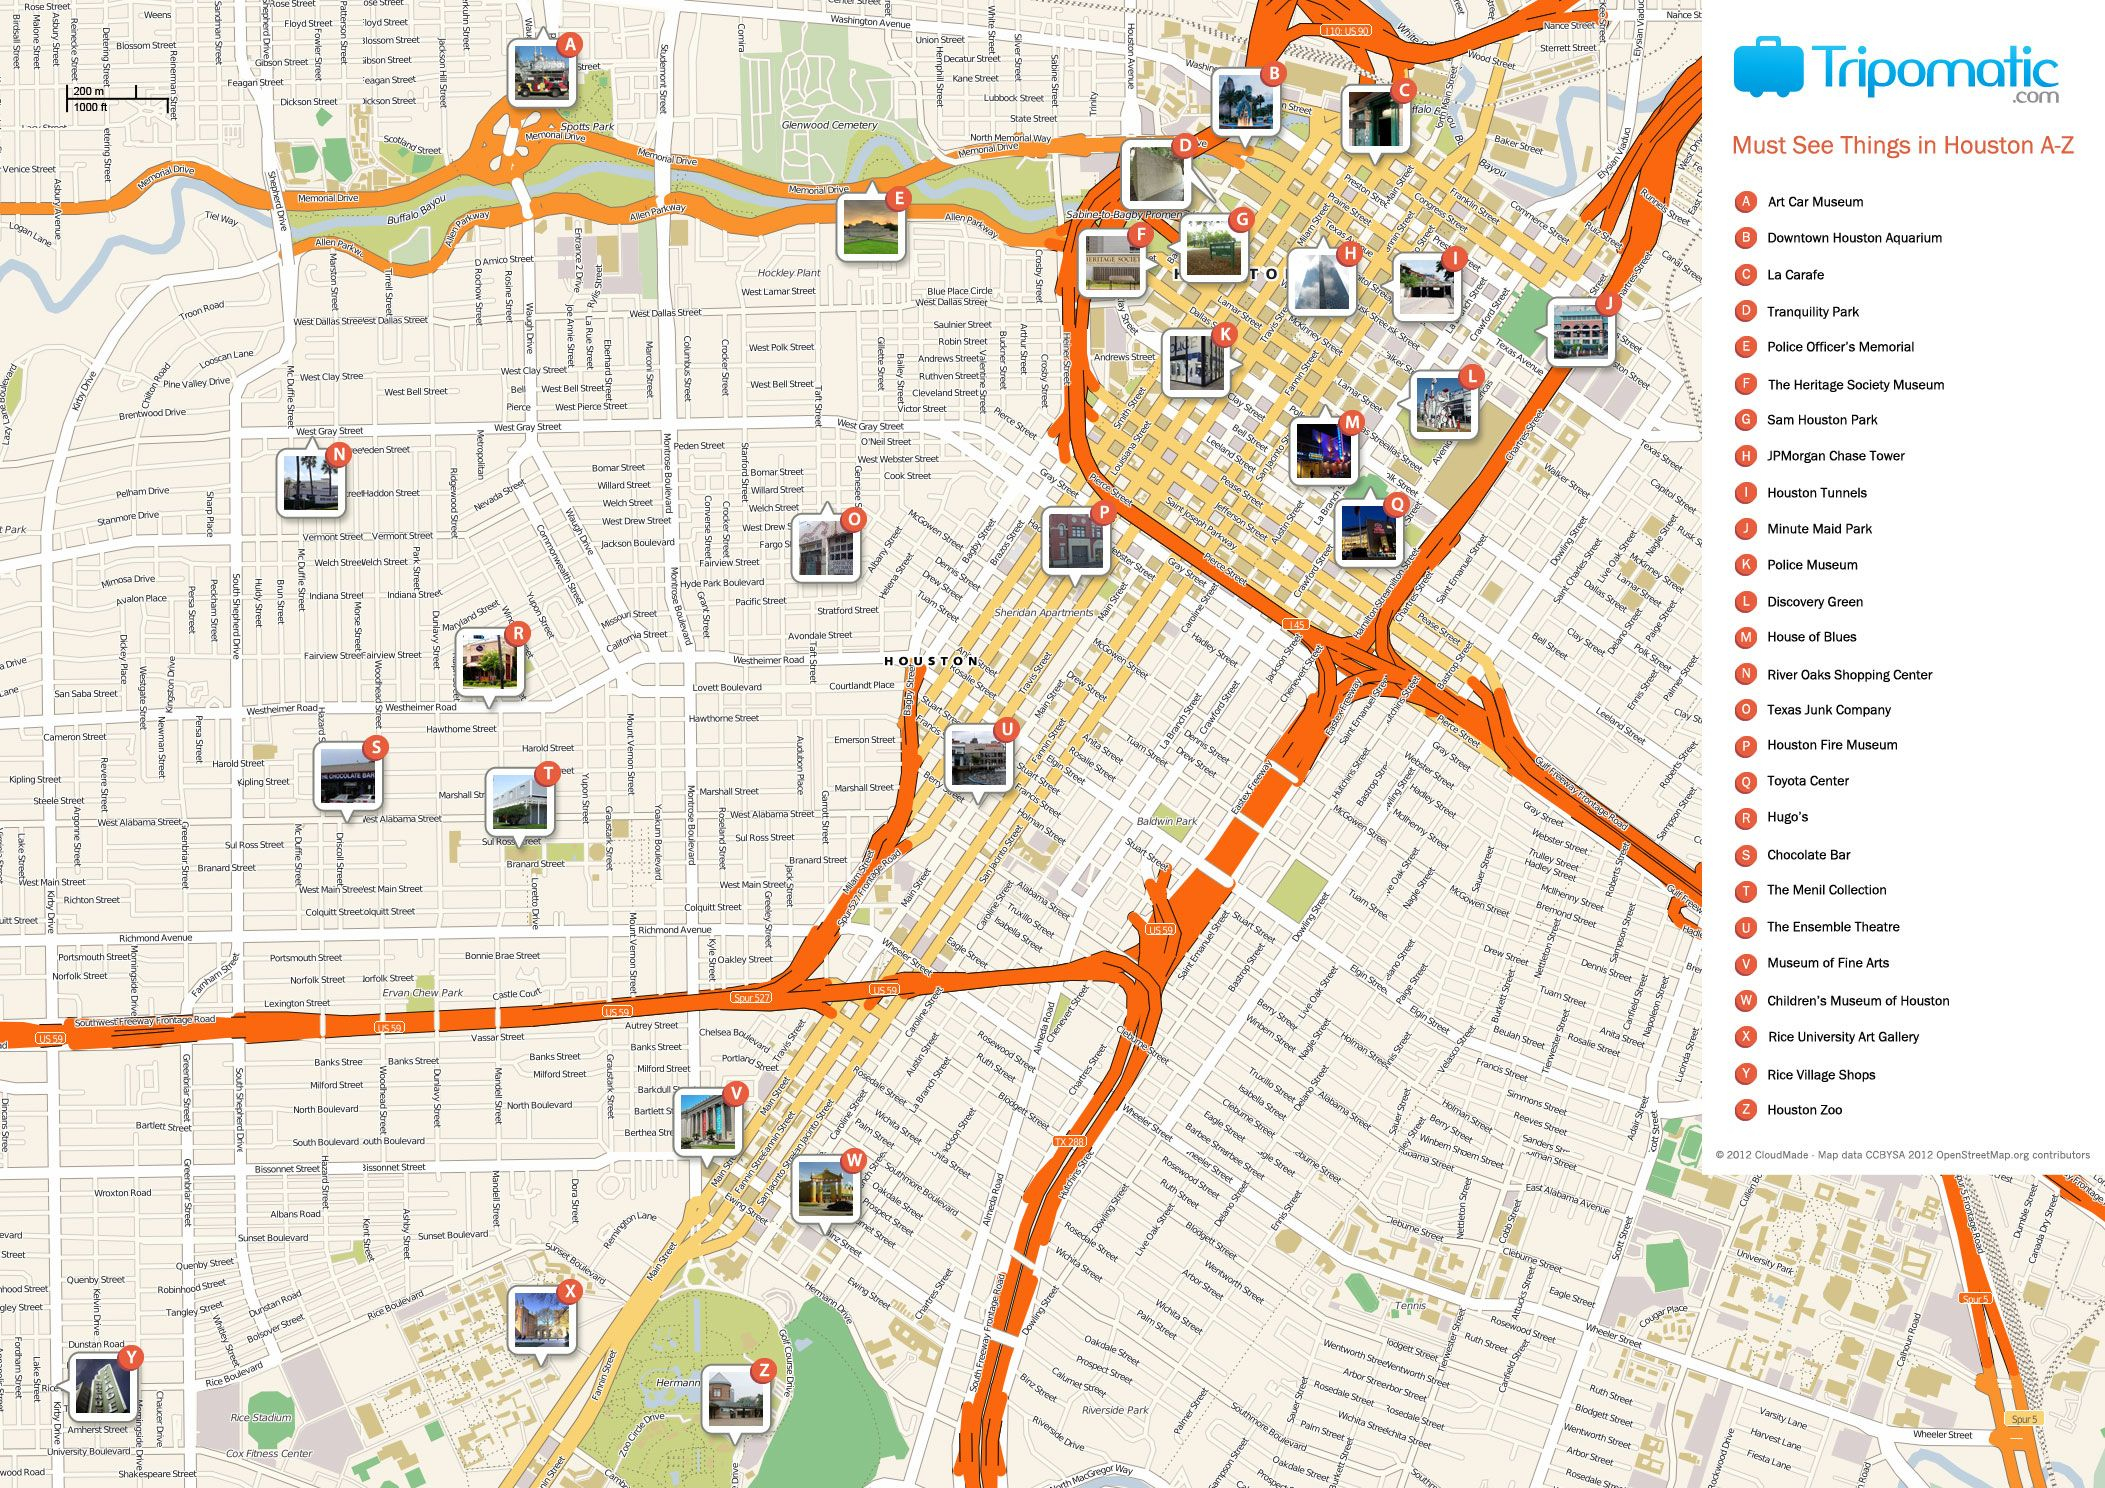 Houston Printable Tourist Map | Homeschooling & Unschooling - Texas Sightseeing Map